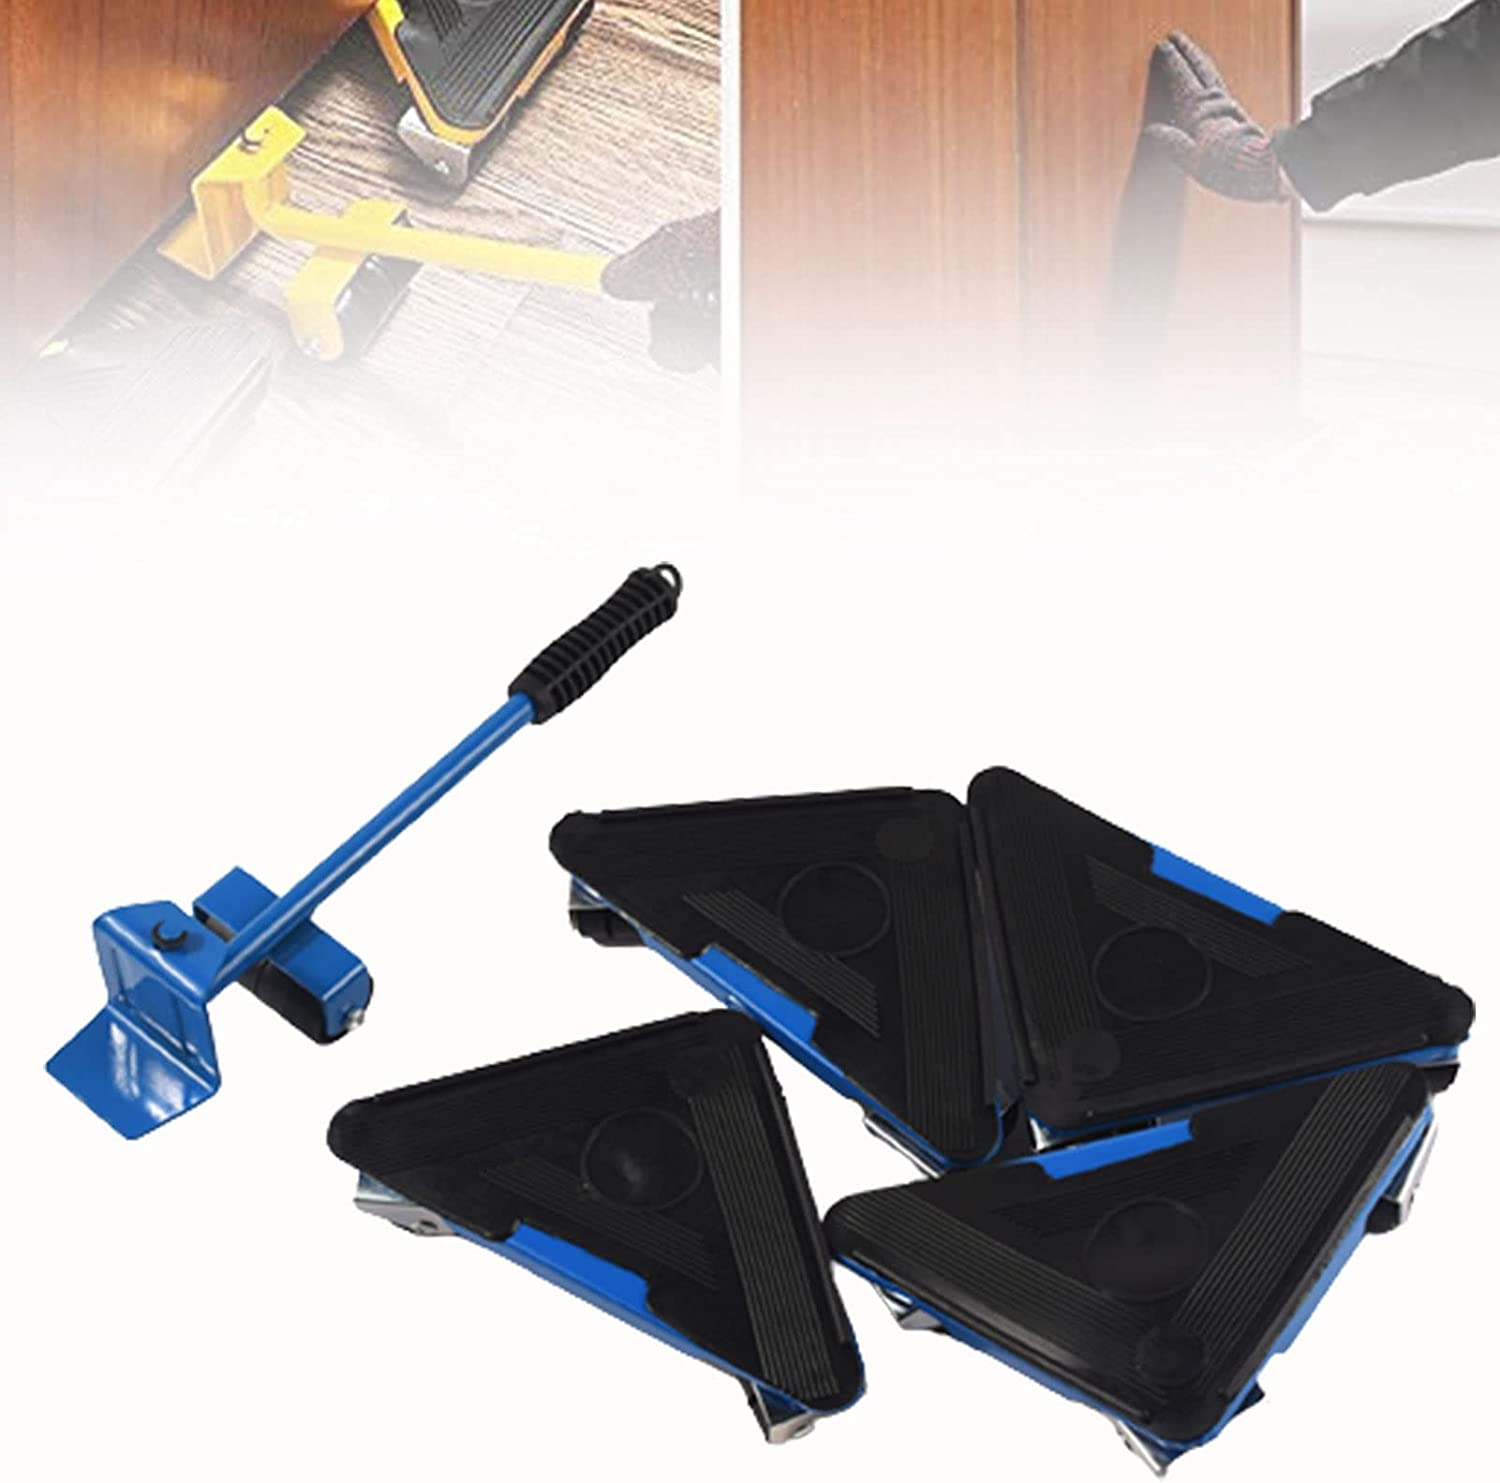 CSYHJRS Furniture Moving Tools with 4 Sliders, Furniture Moving